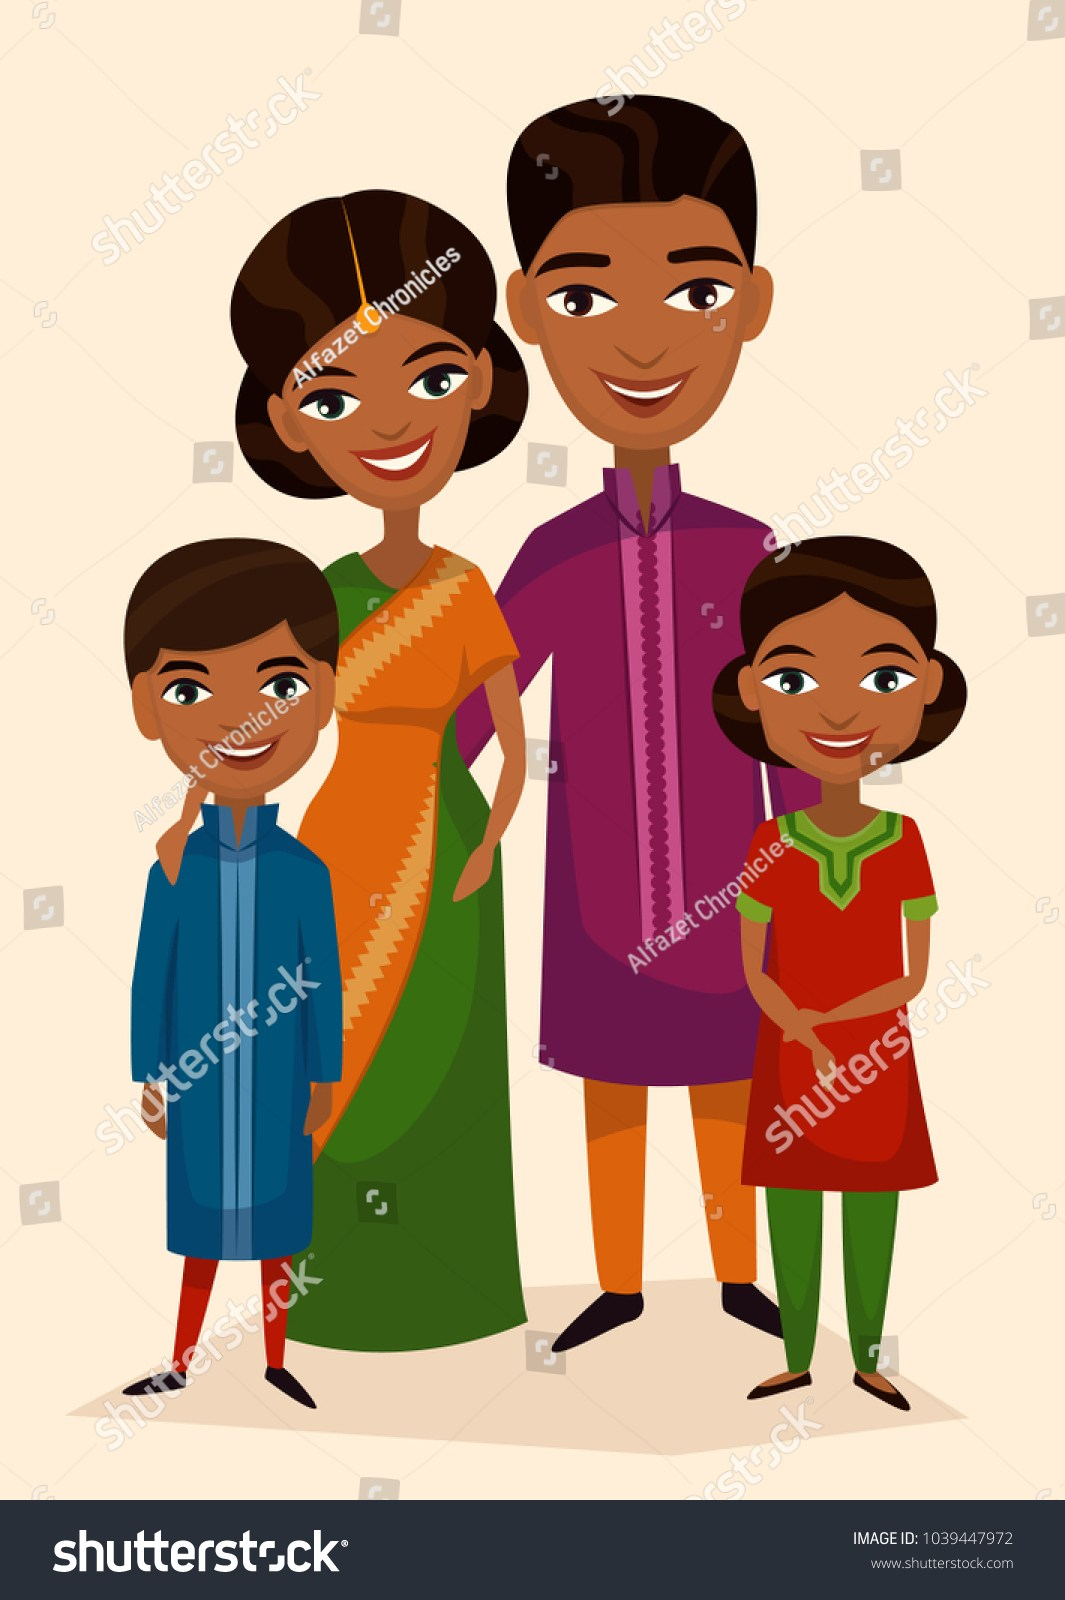 Indian family clipart 7 » Clipart Portal.